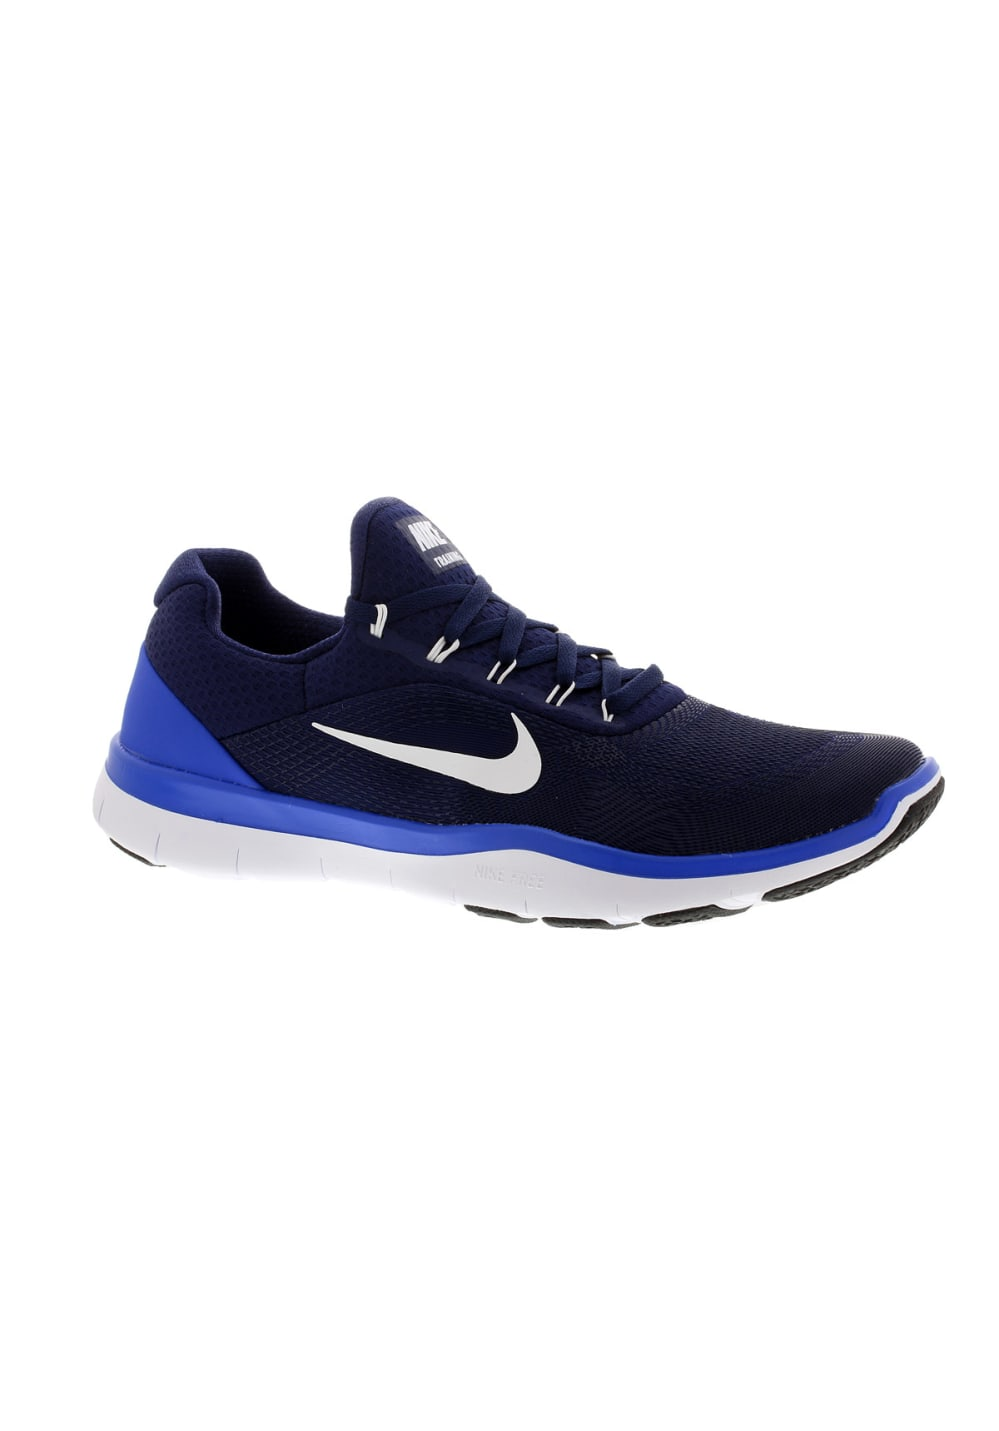 competitive price 39d6f 25d51 Next. -60%. Nike. Free Trainer V7 - Fitness shoes for Men